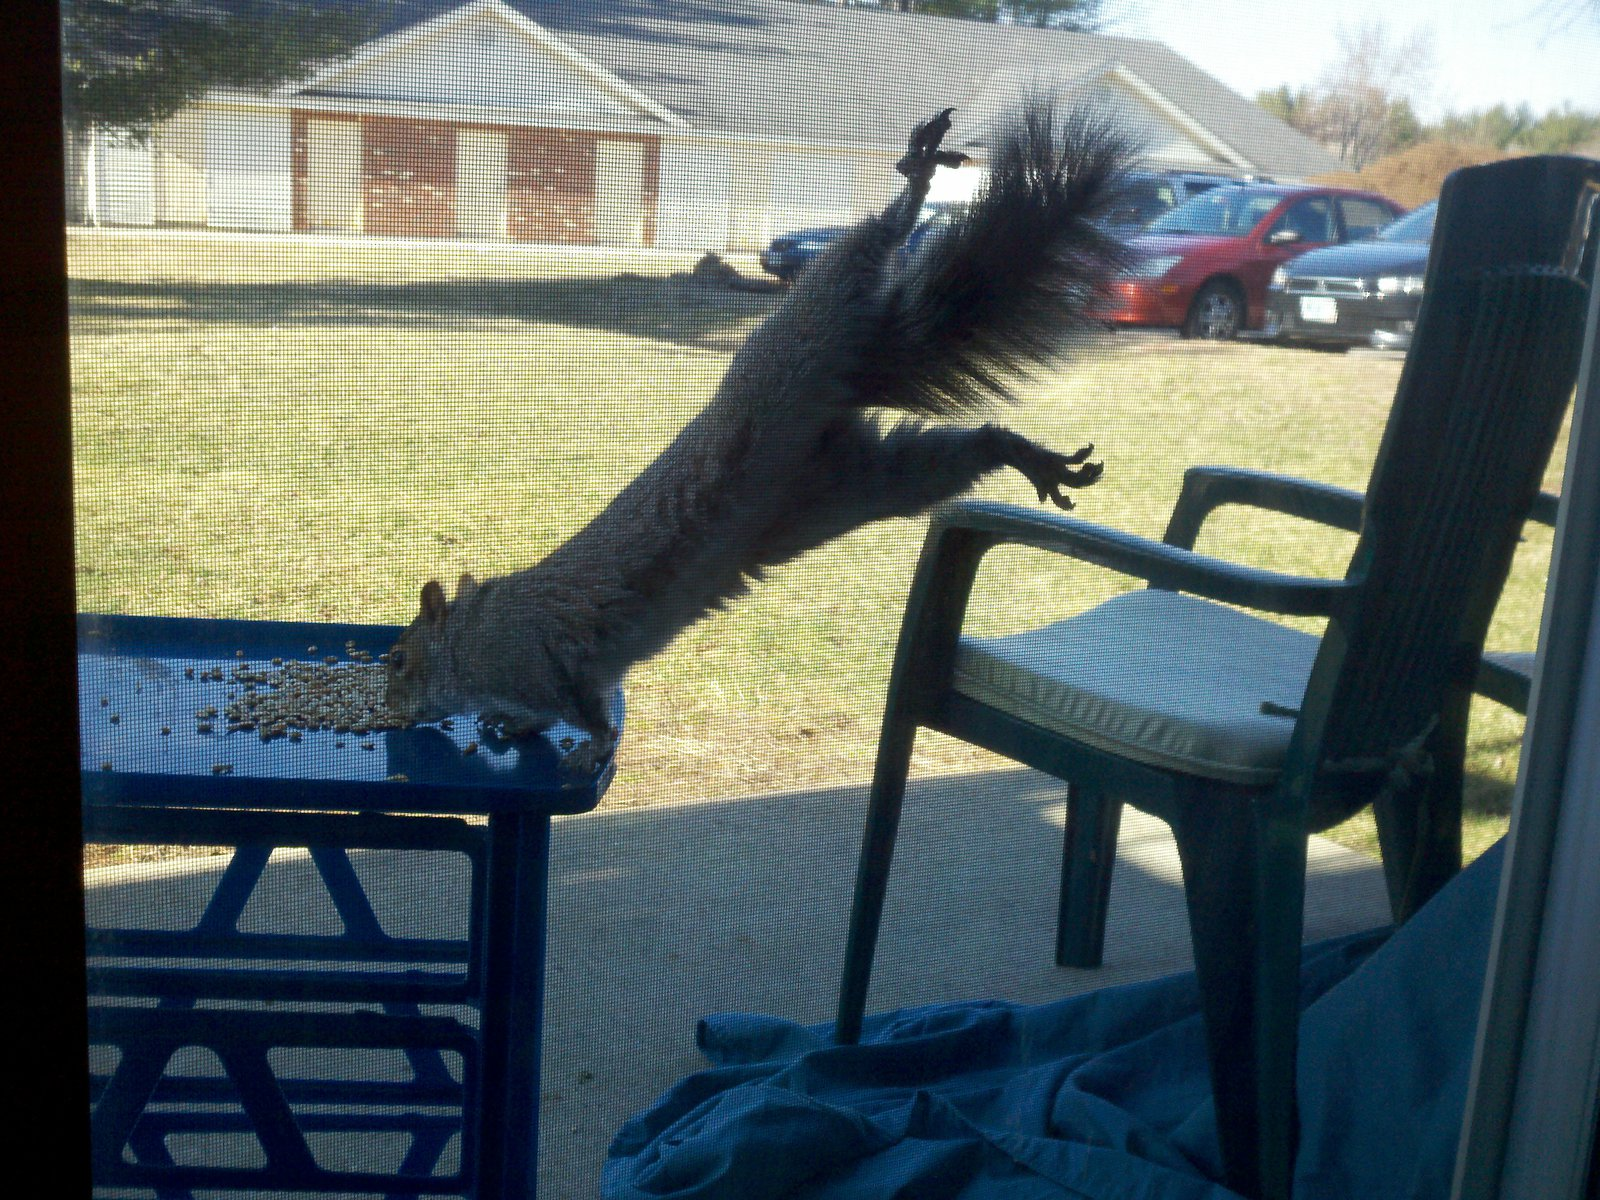 Squirrel is hungry